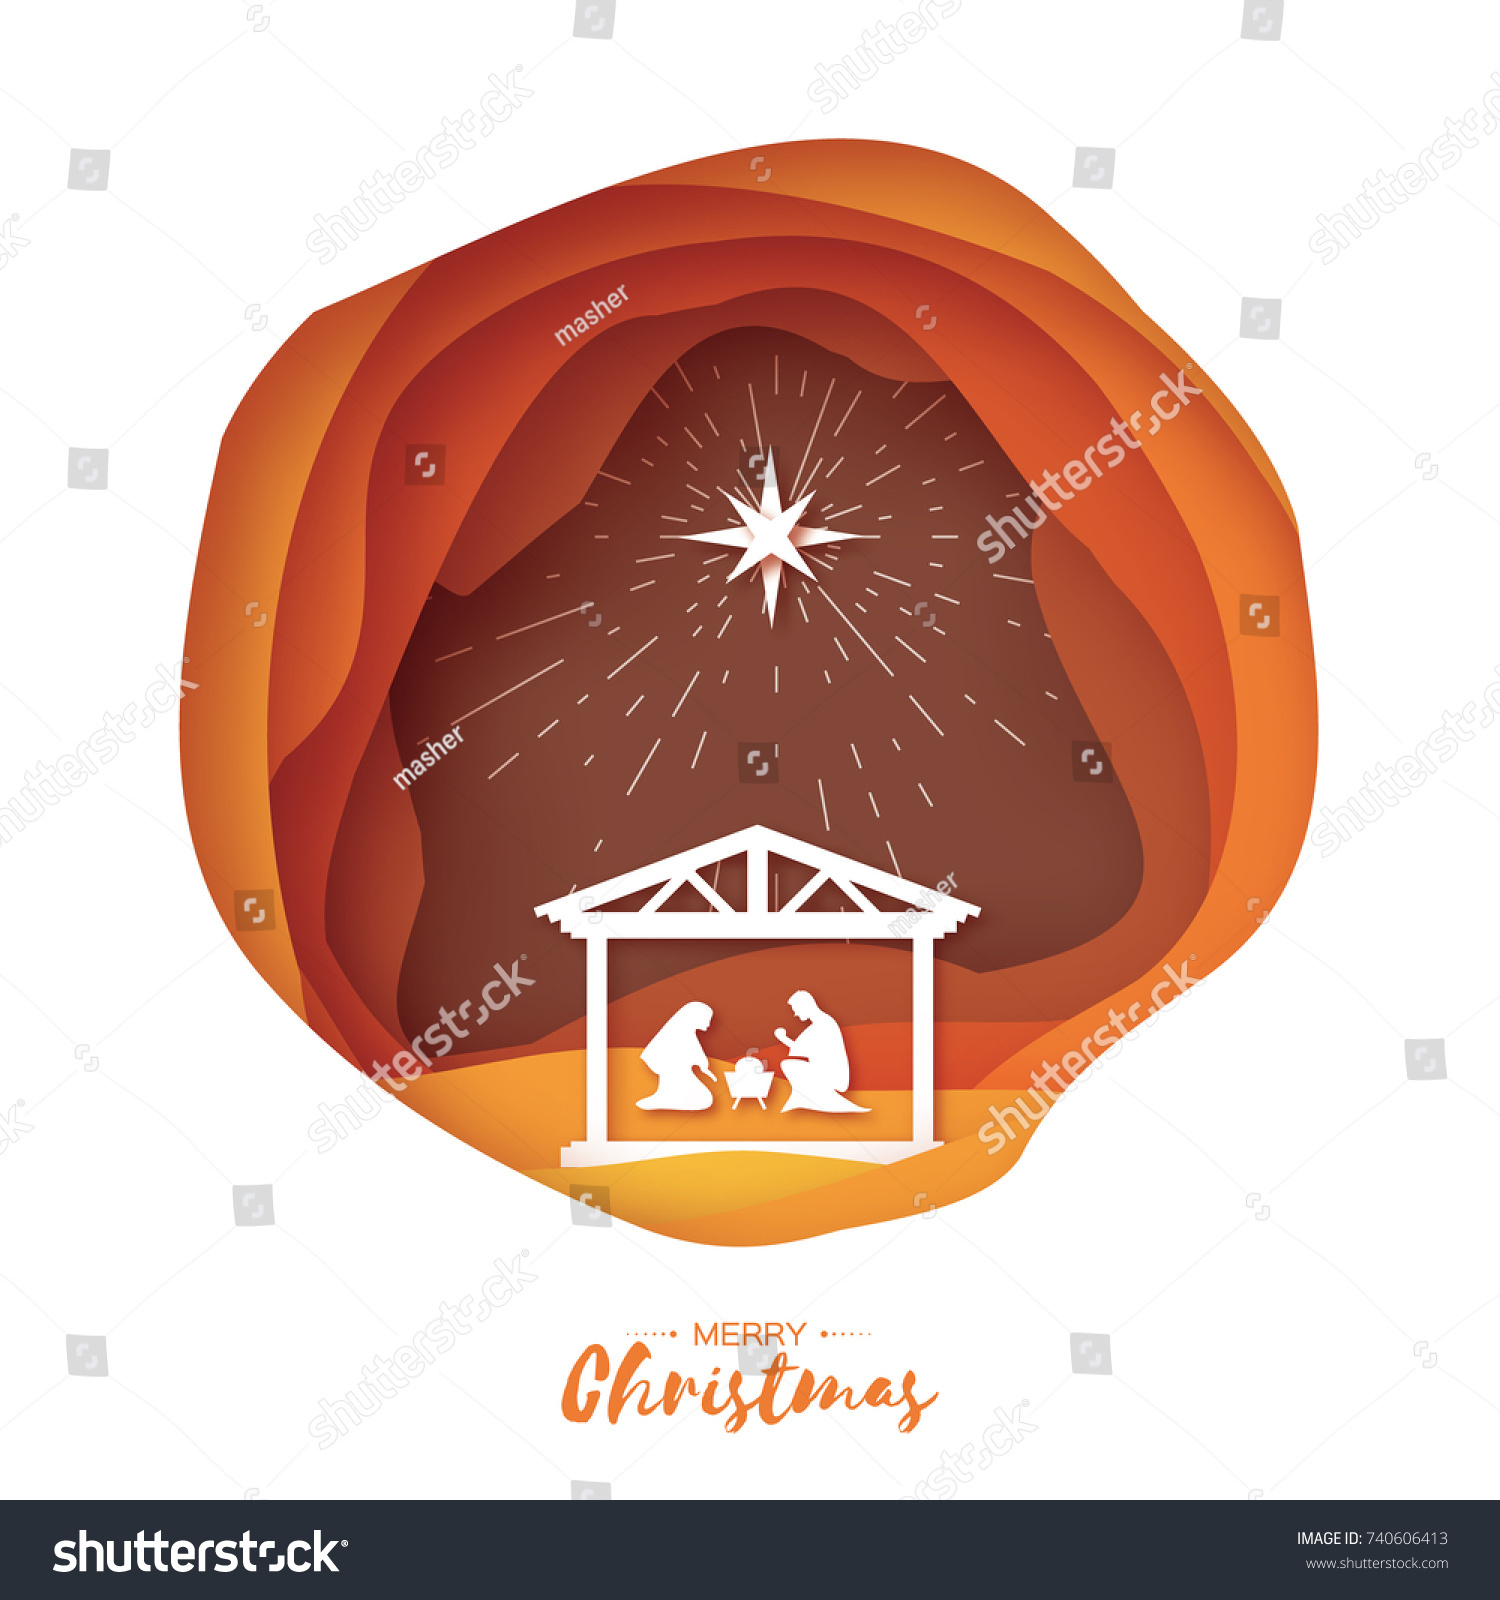 Birth Christ Baby Jesus Manger Holy Stock Vector HD (Royalty Free ...